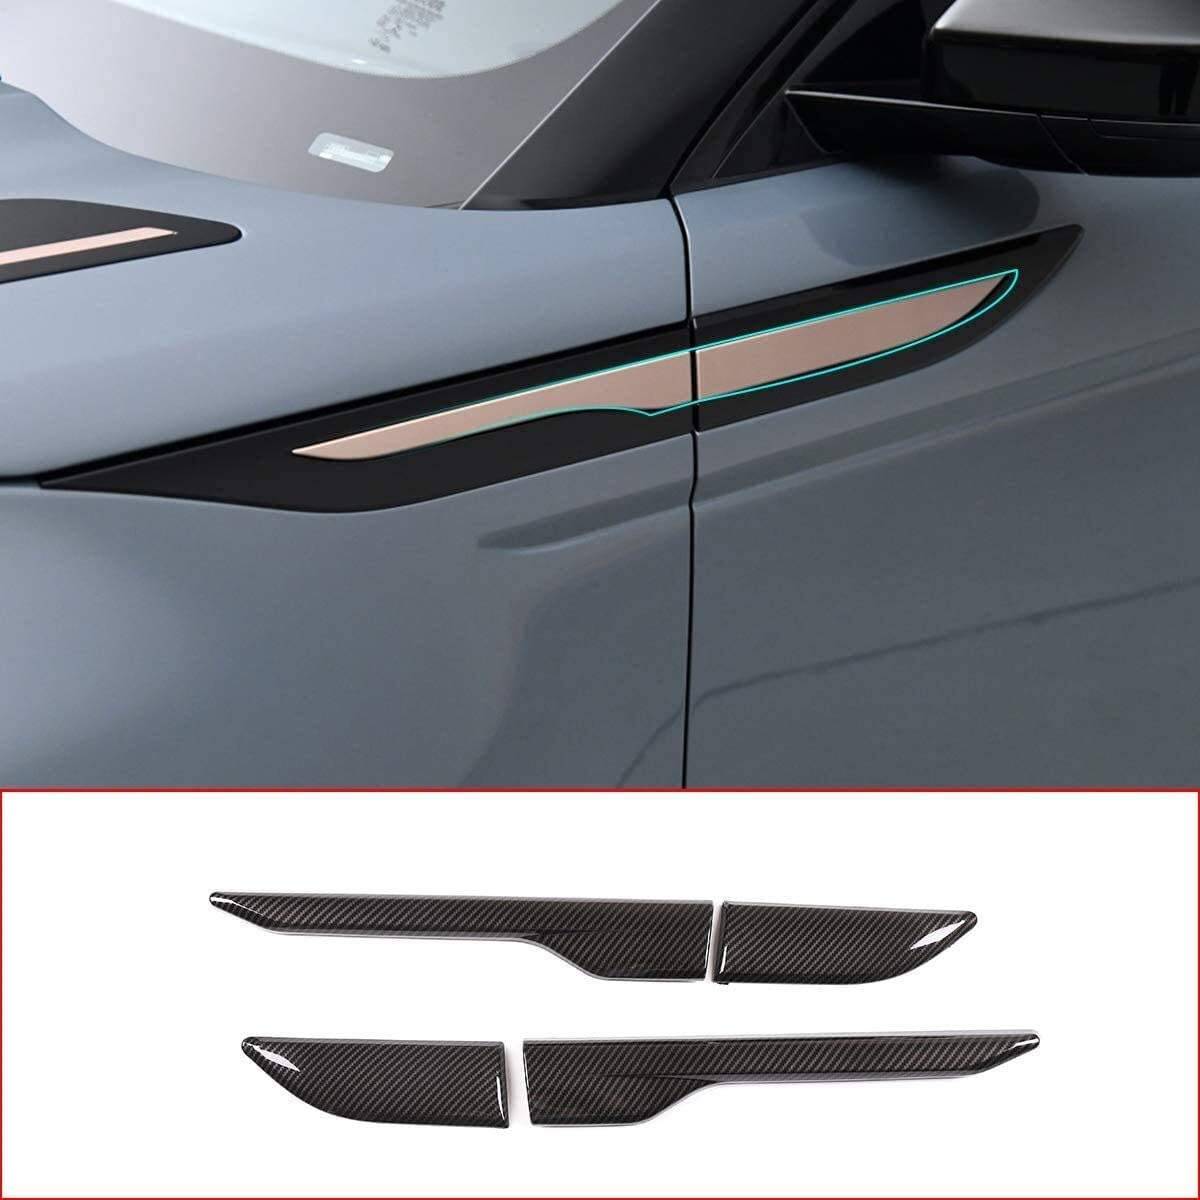 Apply to Carbon Fiber Style ABS Side Baltimore Mall O Accessories Vent Air Auto 5 popular